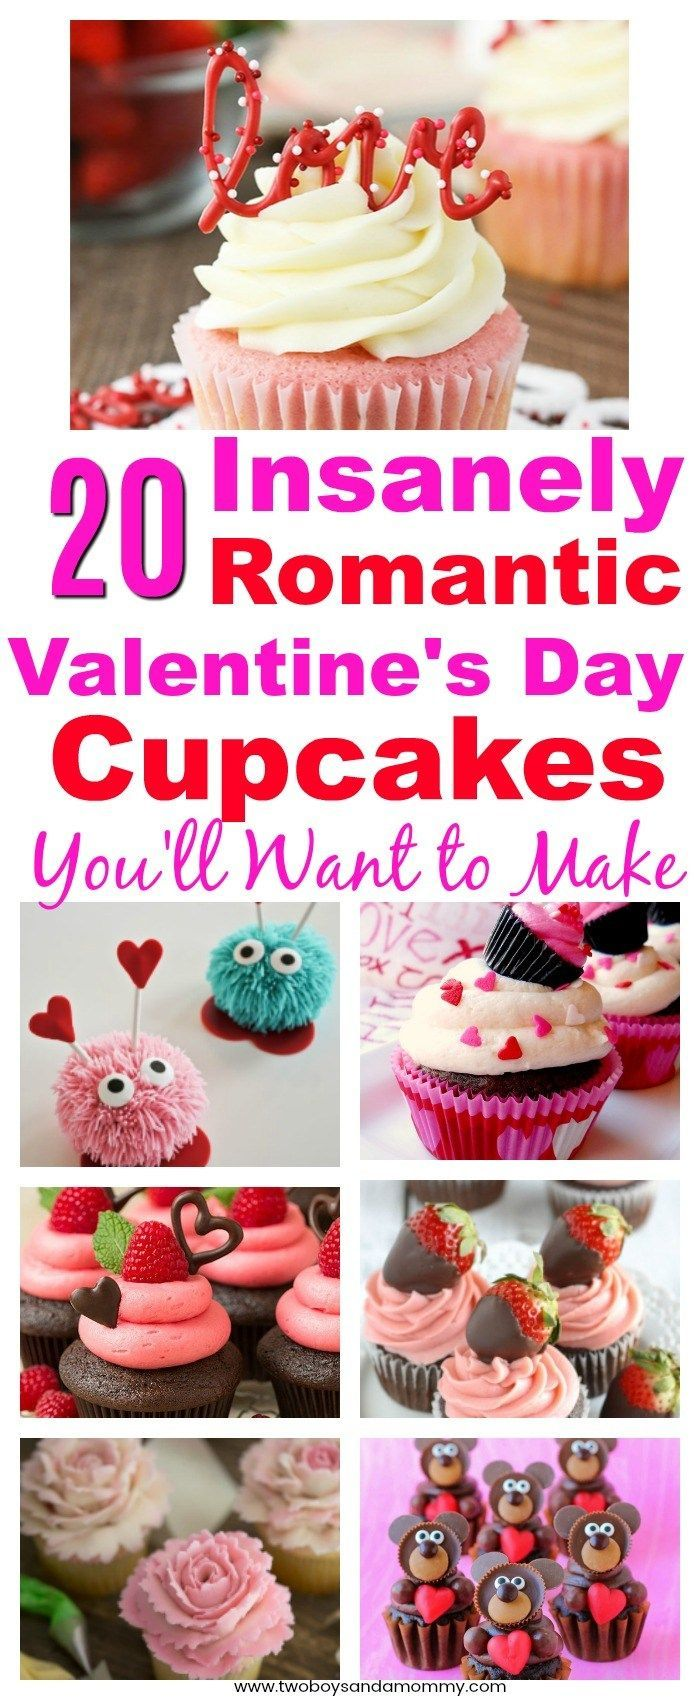 20 Romantic Valentine�s Day Cupcakes You�ll Want to Make   Inspiration for Adorable Valentine's Day Cupcakes for your Sweet Heart #valentinesday #cupcakes #dessert #delicious #adorable #creative #love